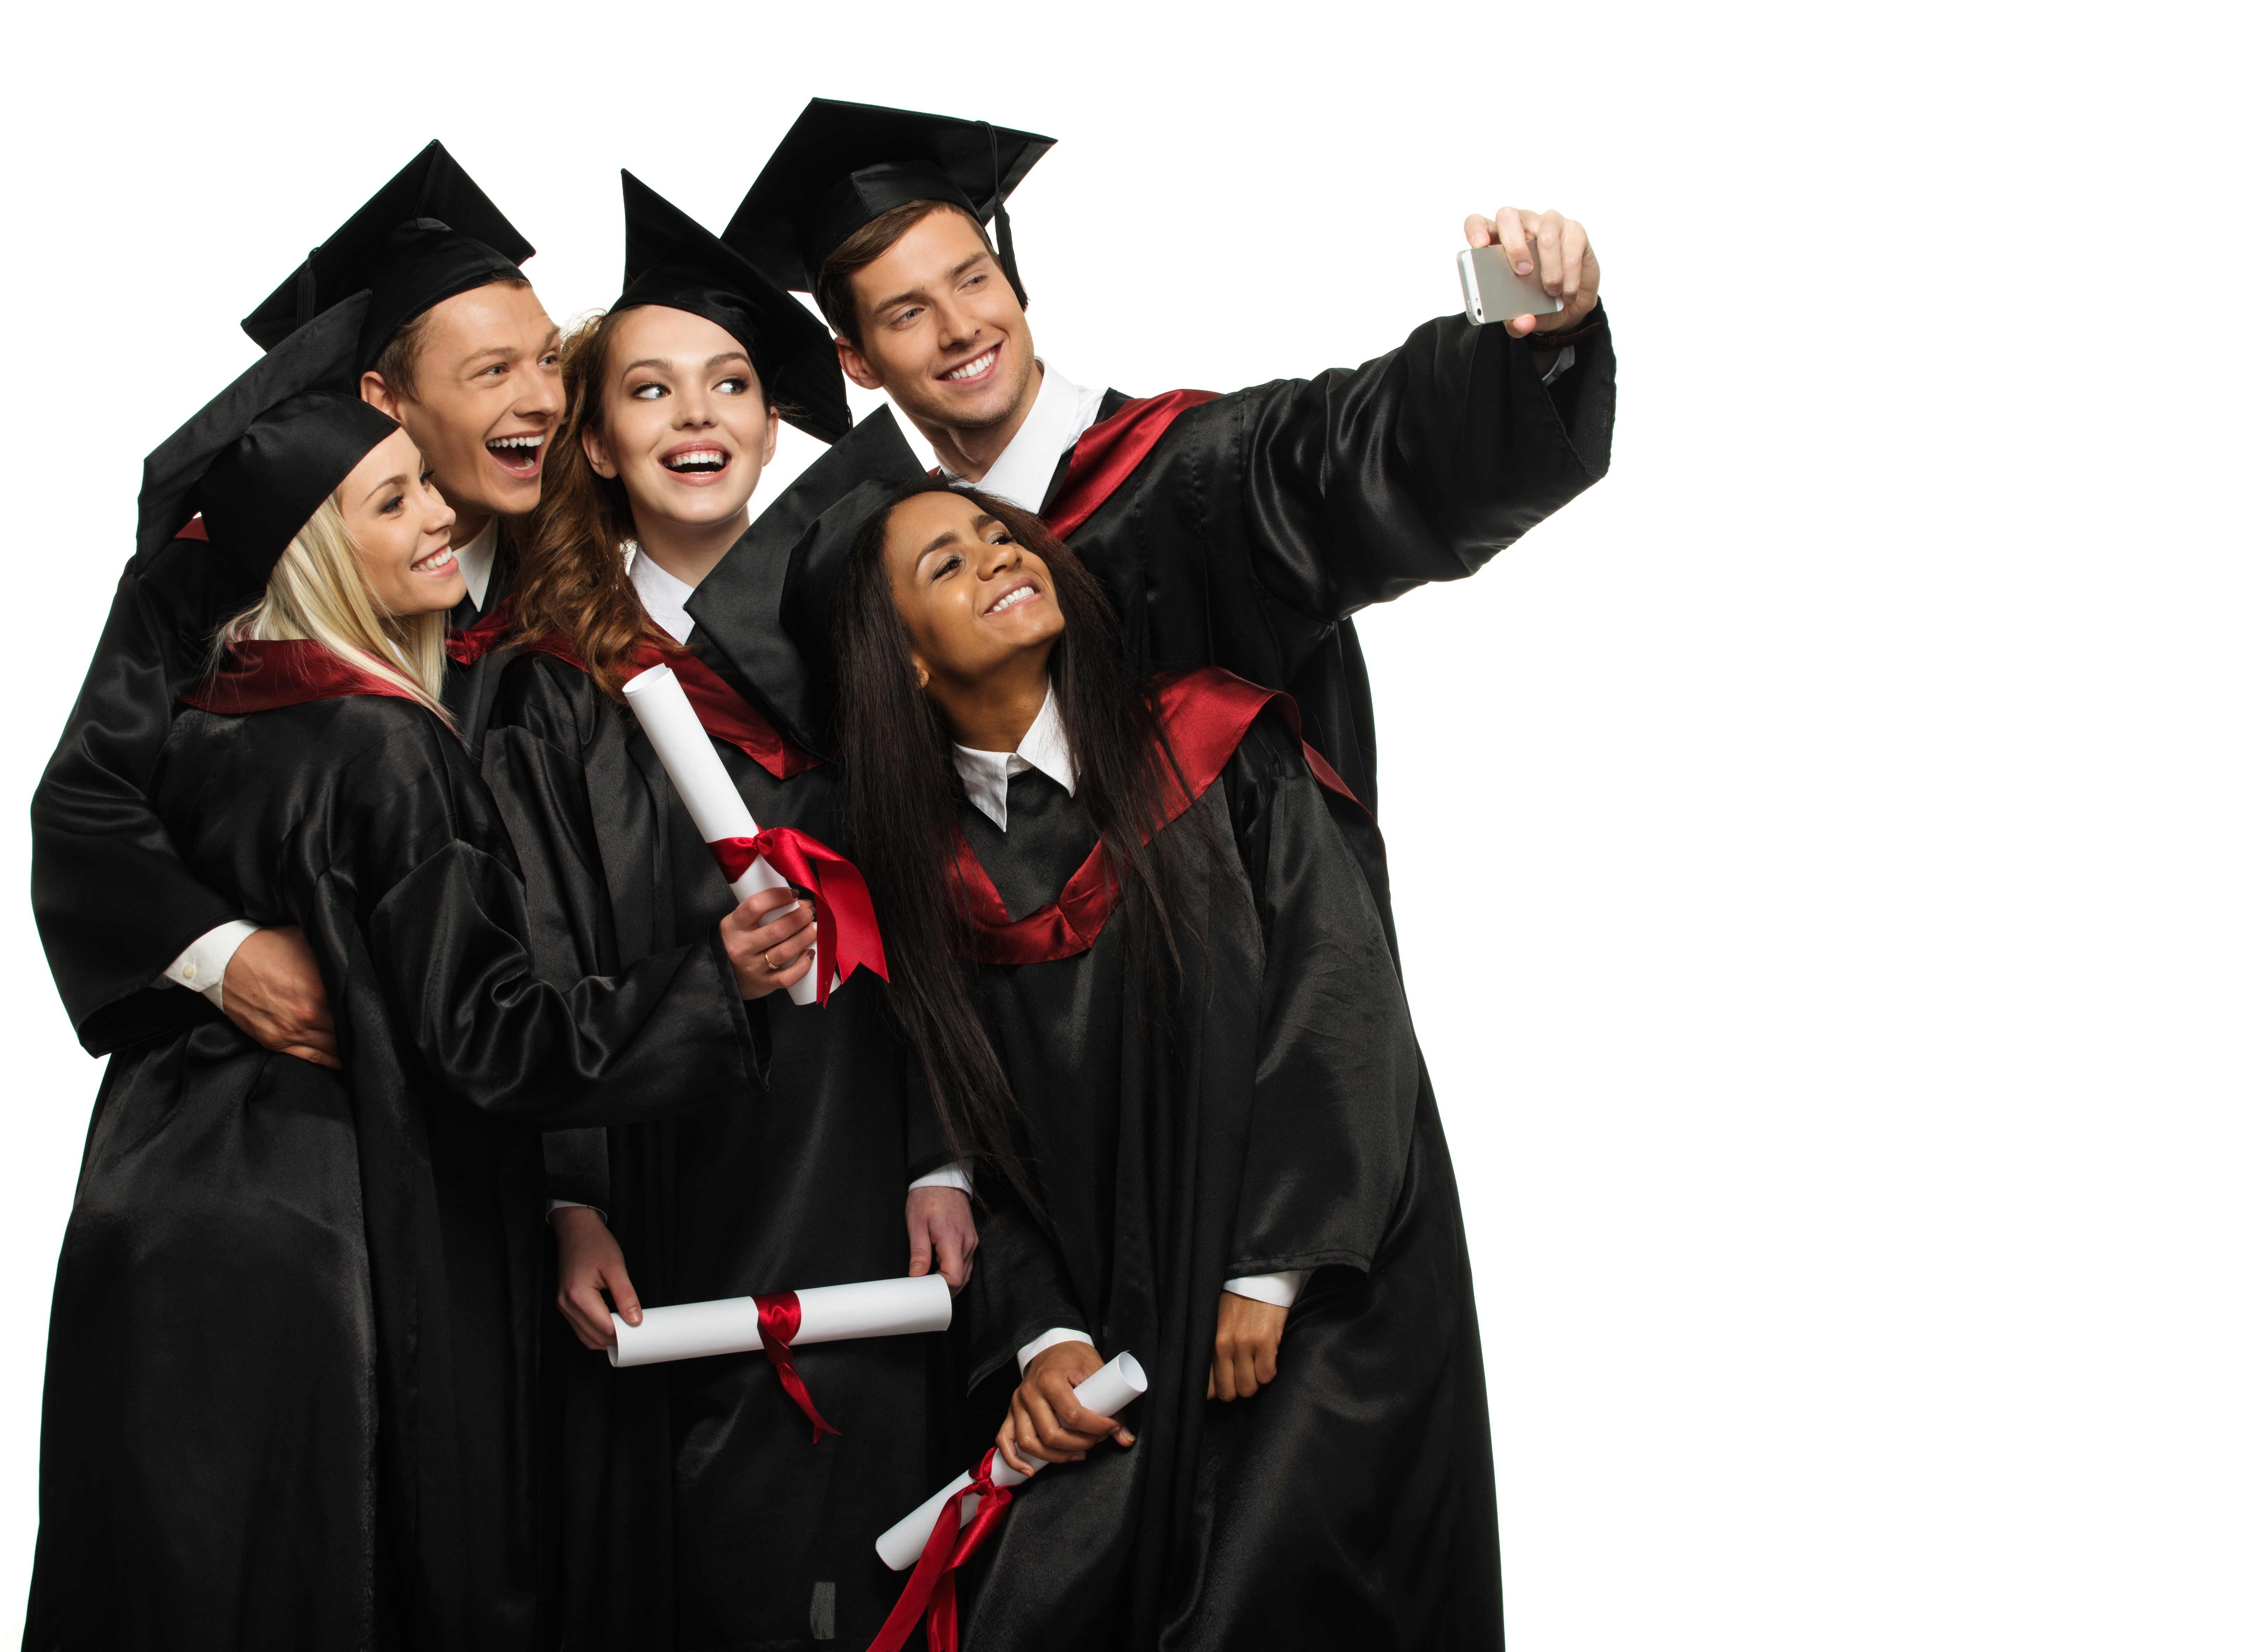 Stock photo of a group of high school graduate